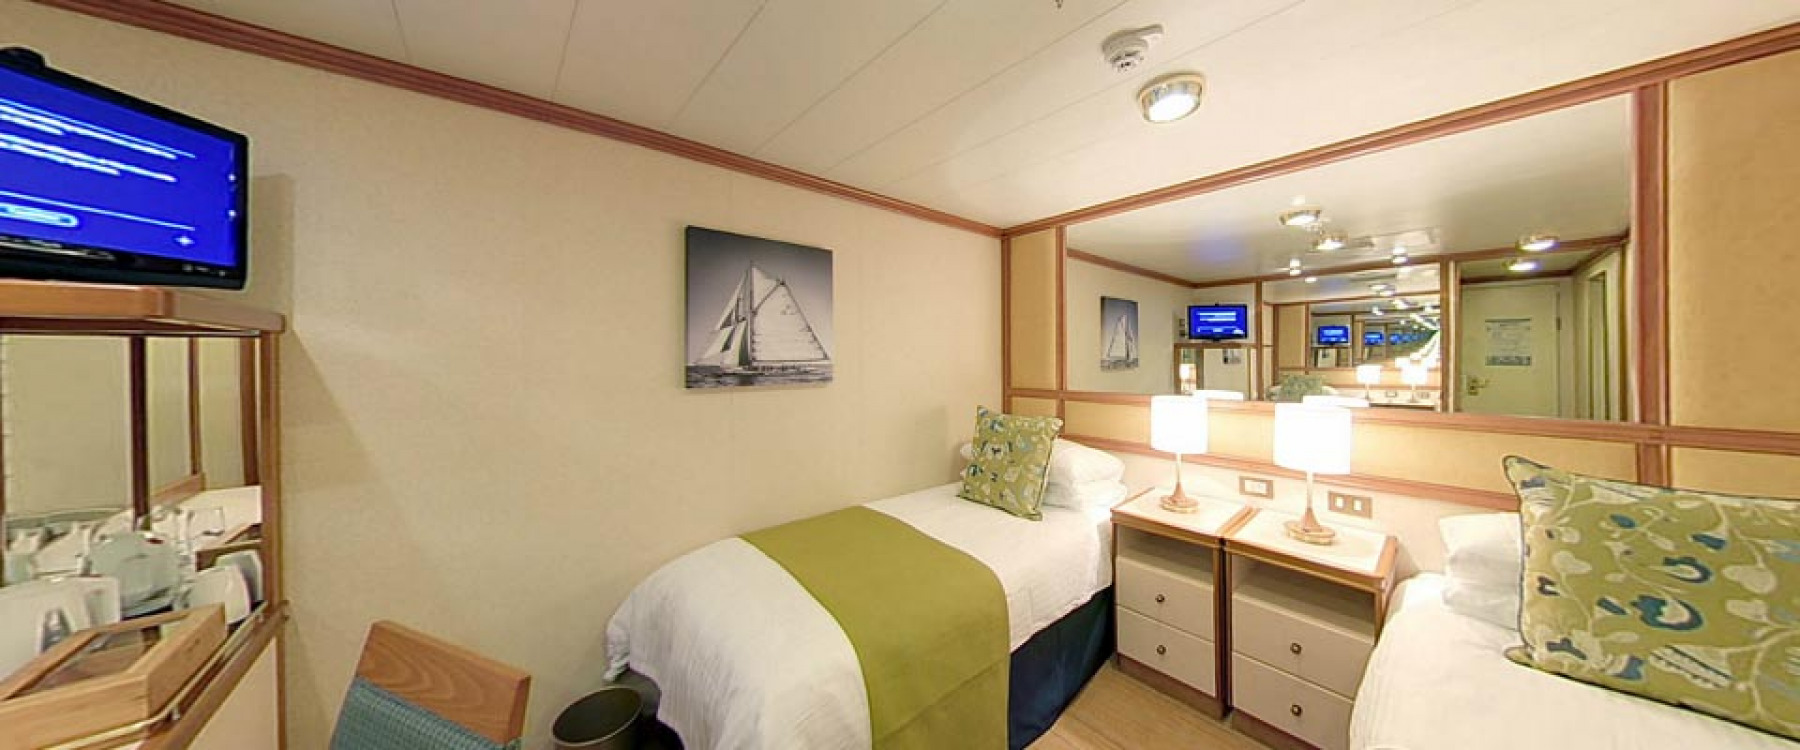 P&O Cruises Azura Accommodation Inside Cabin.jpg